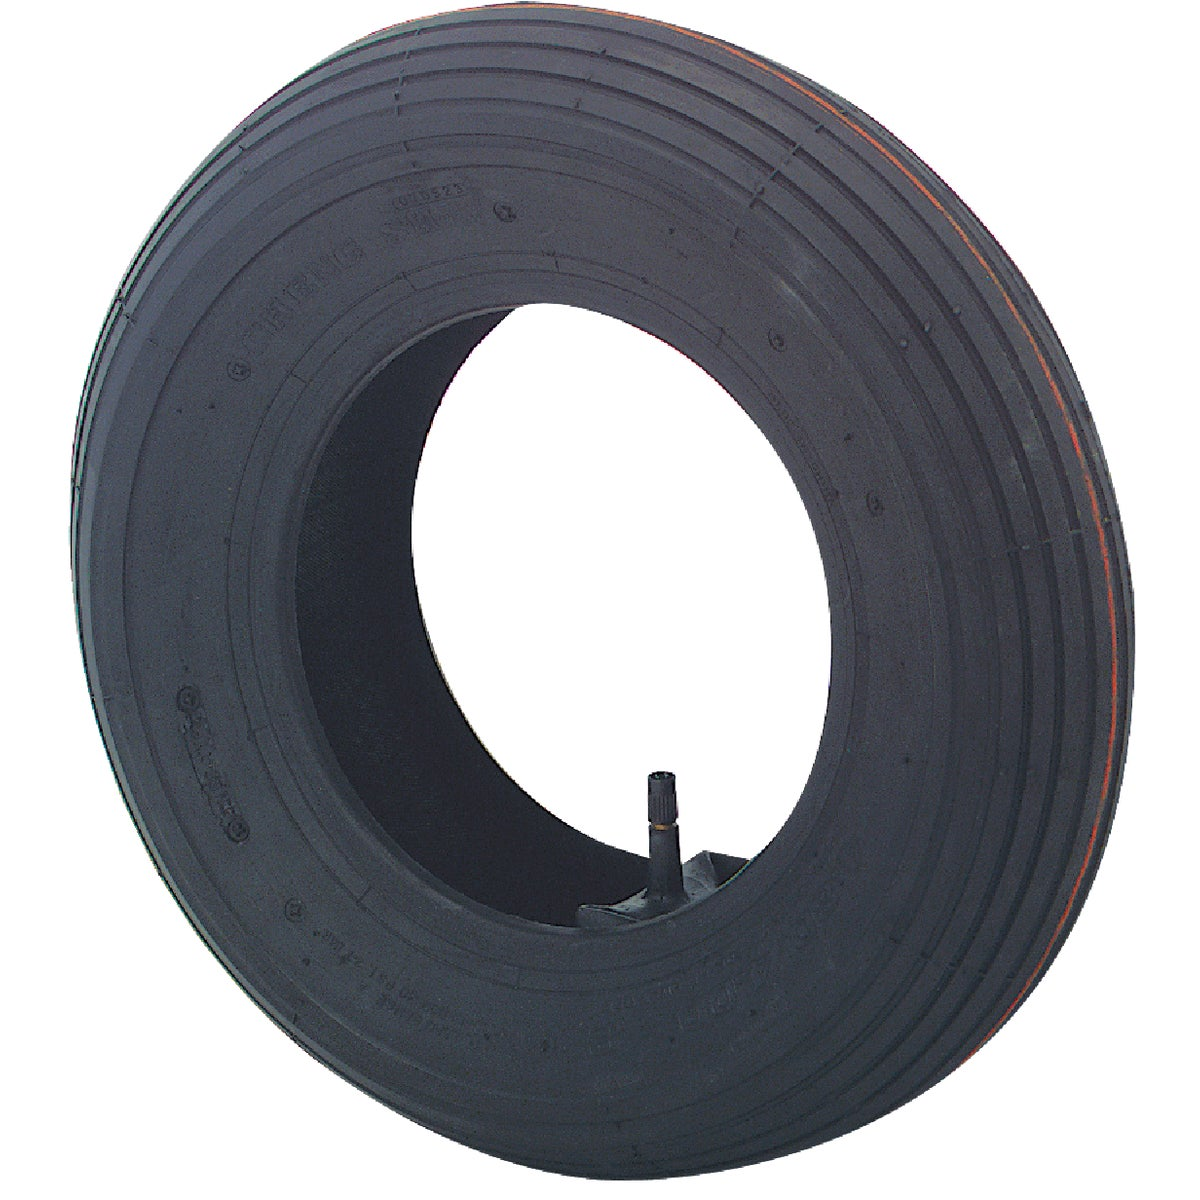 Arnold Corp. TIRE & TUBE COMBO 490-326-0007